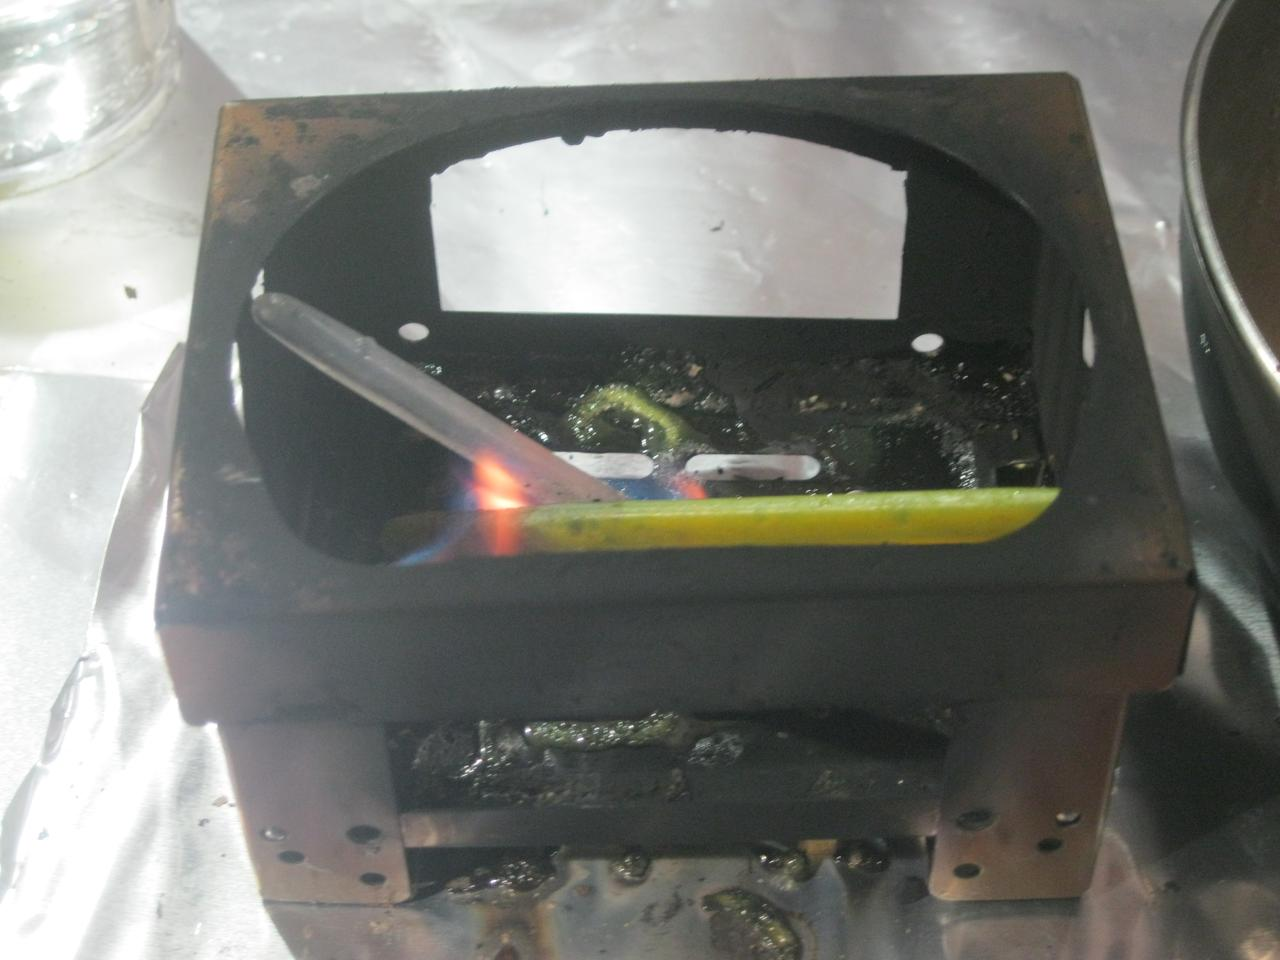 The Flamestick is a recycled thermoplastic firestarter